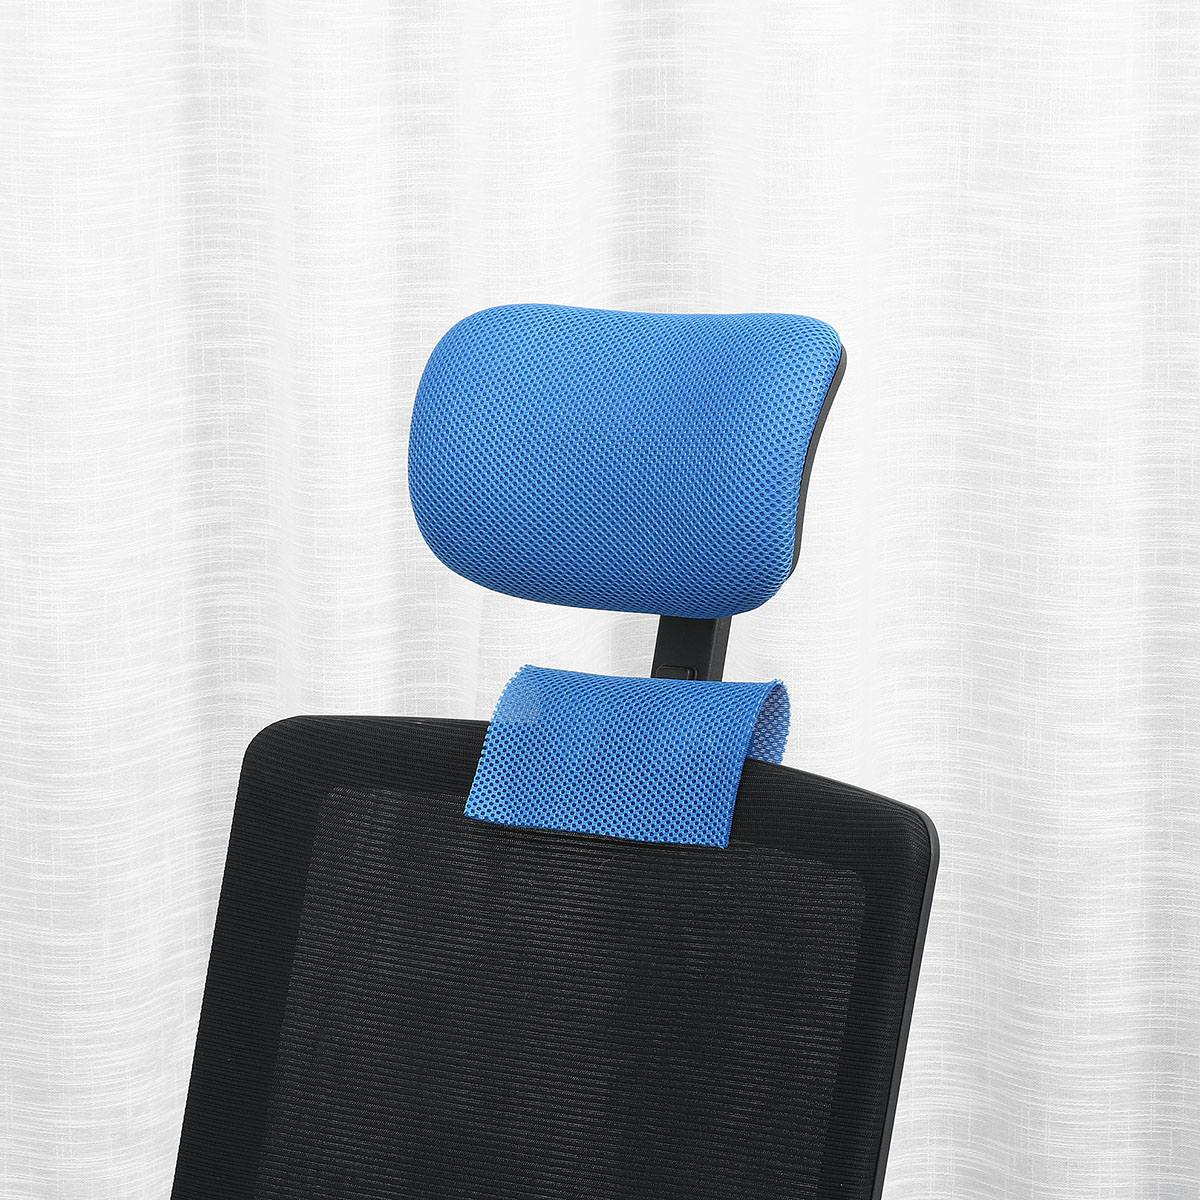 Adjustable Chair Headrest Pillow for Office Chair Computer Chair Neck Protection Pillow Headrest for Chair Office Accessories